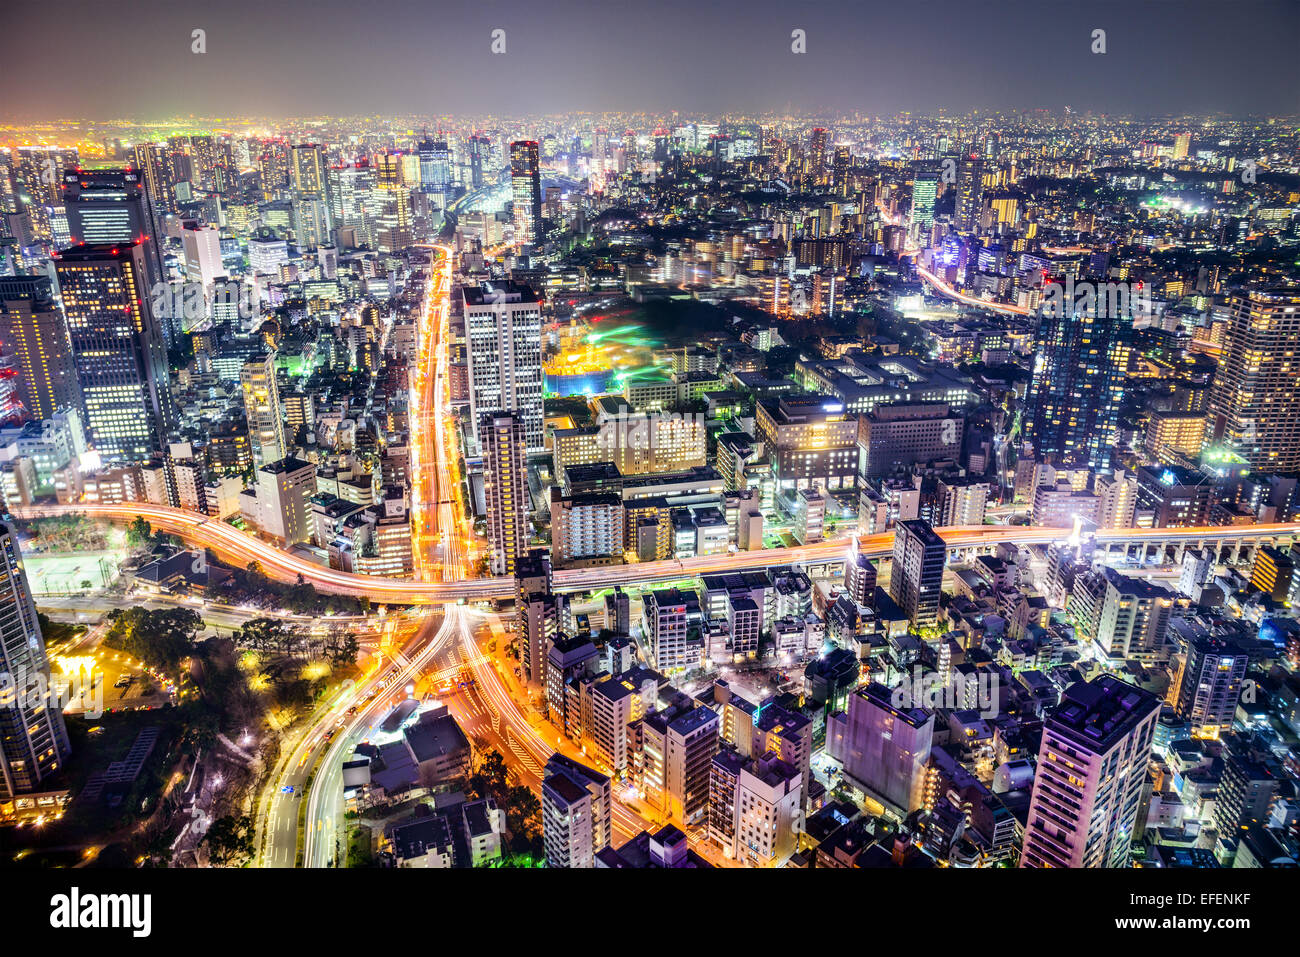 Tokyo, Japan cityscape and highways. - Stock Image